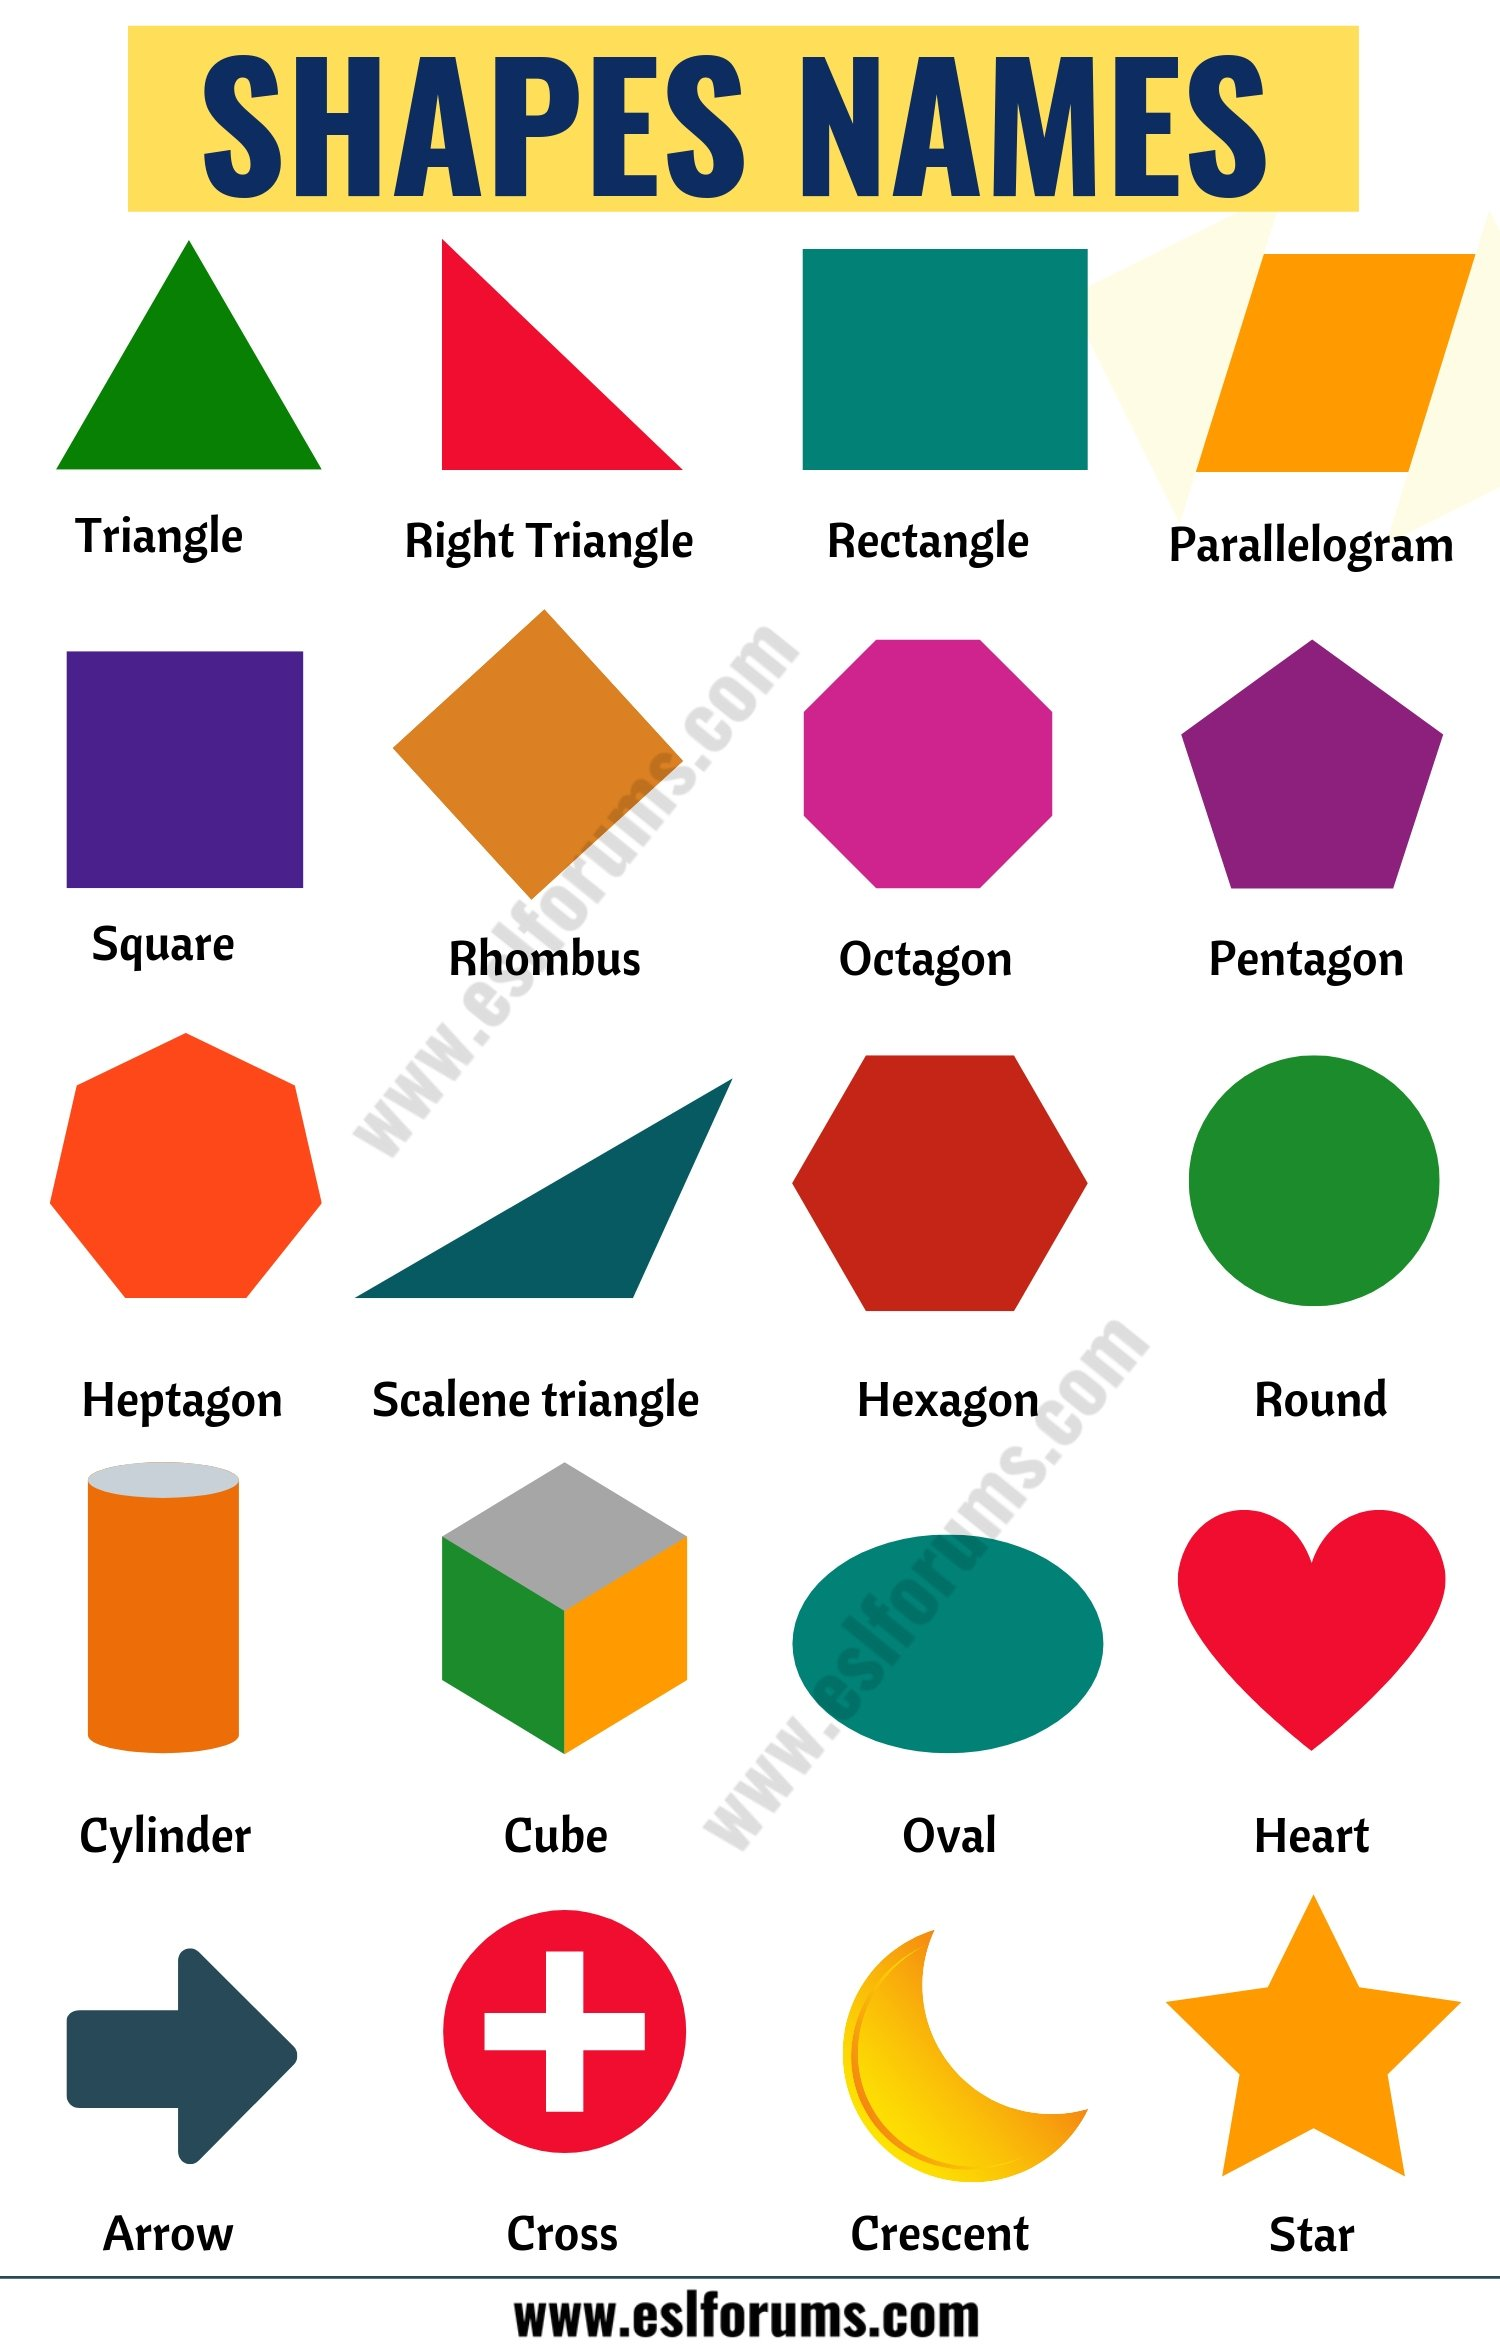 Shapes Names: List of 20 Names of Geometric Shapes with ESL Pictures